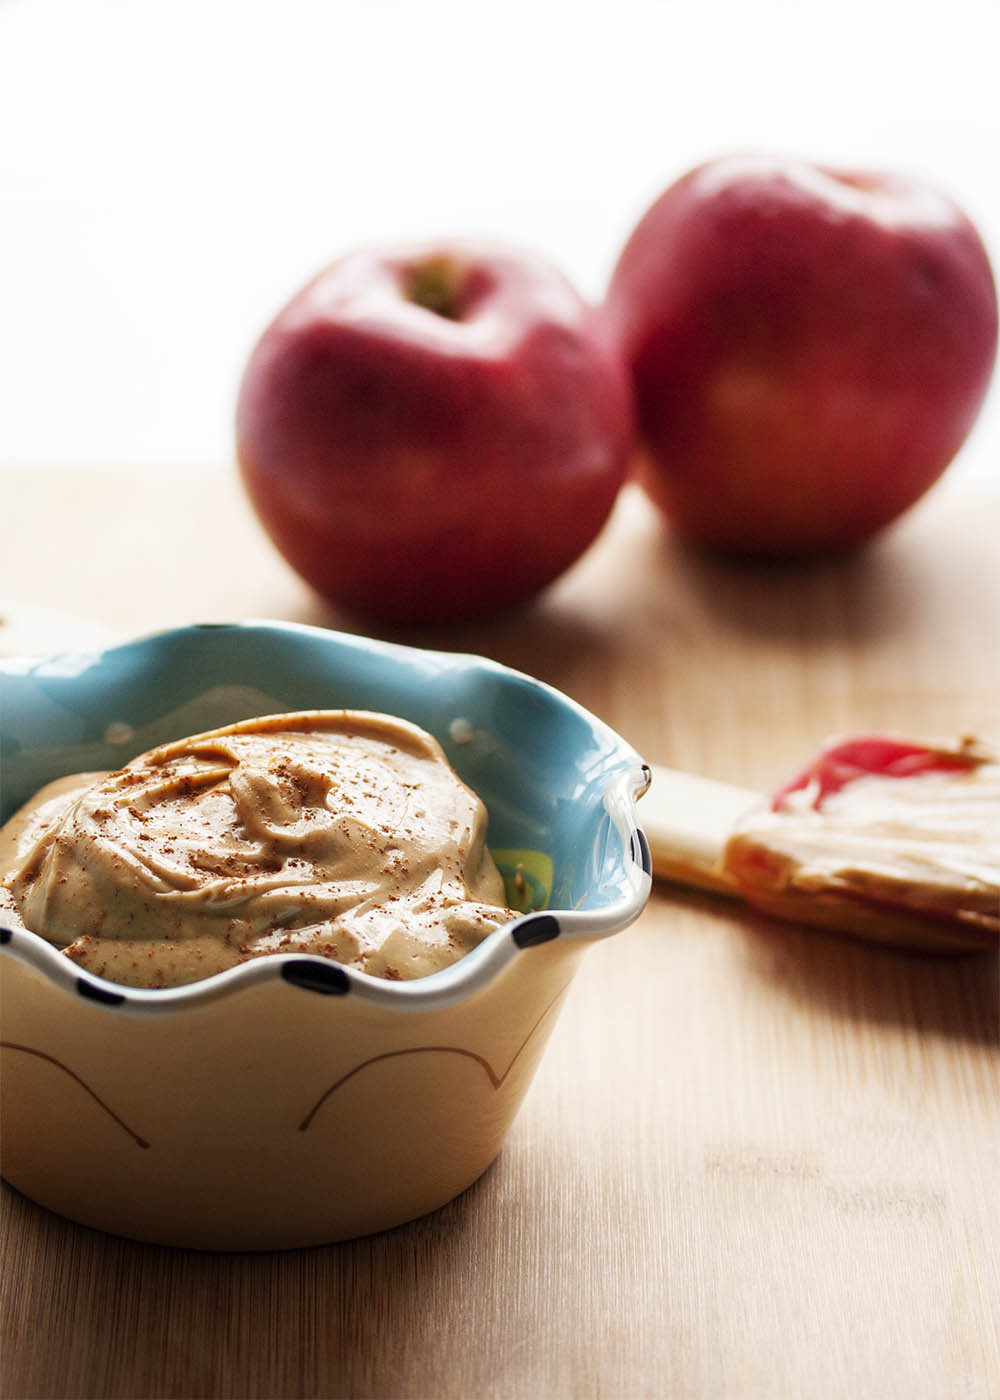 Apple Cider Dip - This cream cheese apple cider dip is packed full of intense cider flavor that will have you coming back for more. | justalittlebitofbacon.com